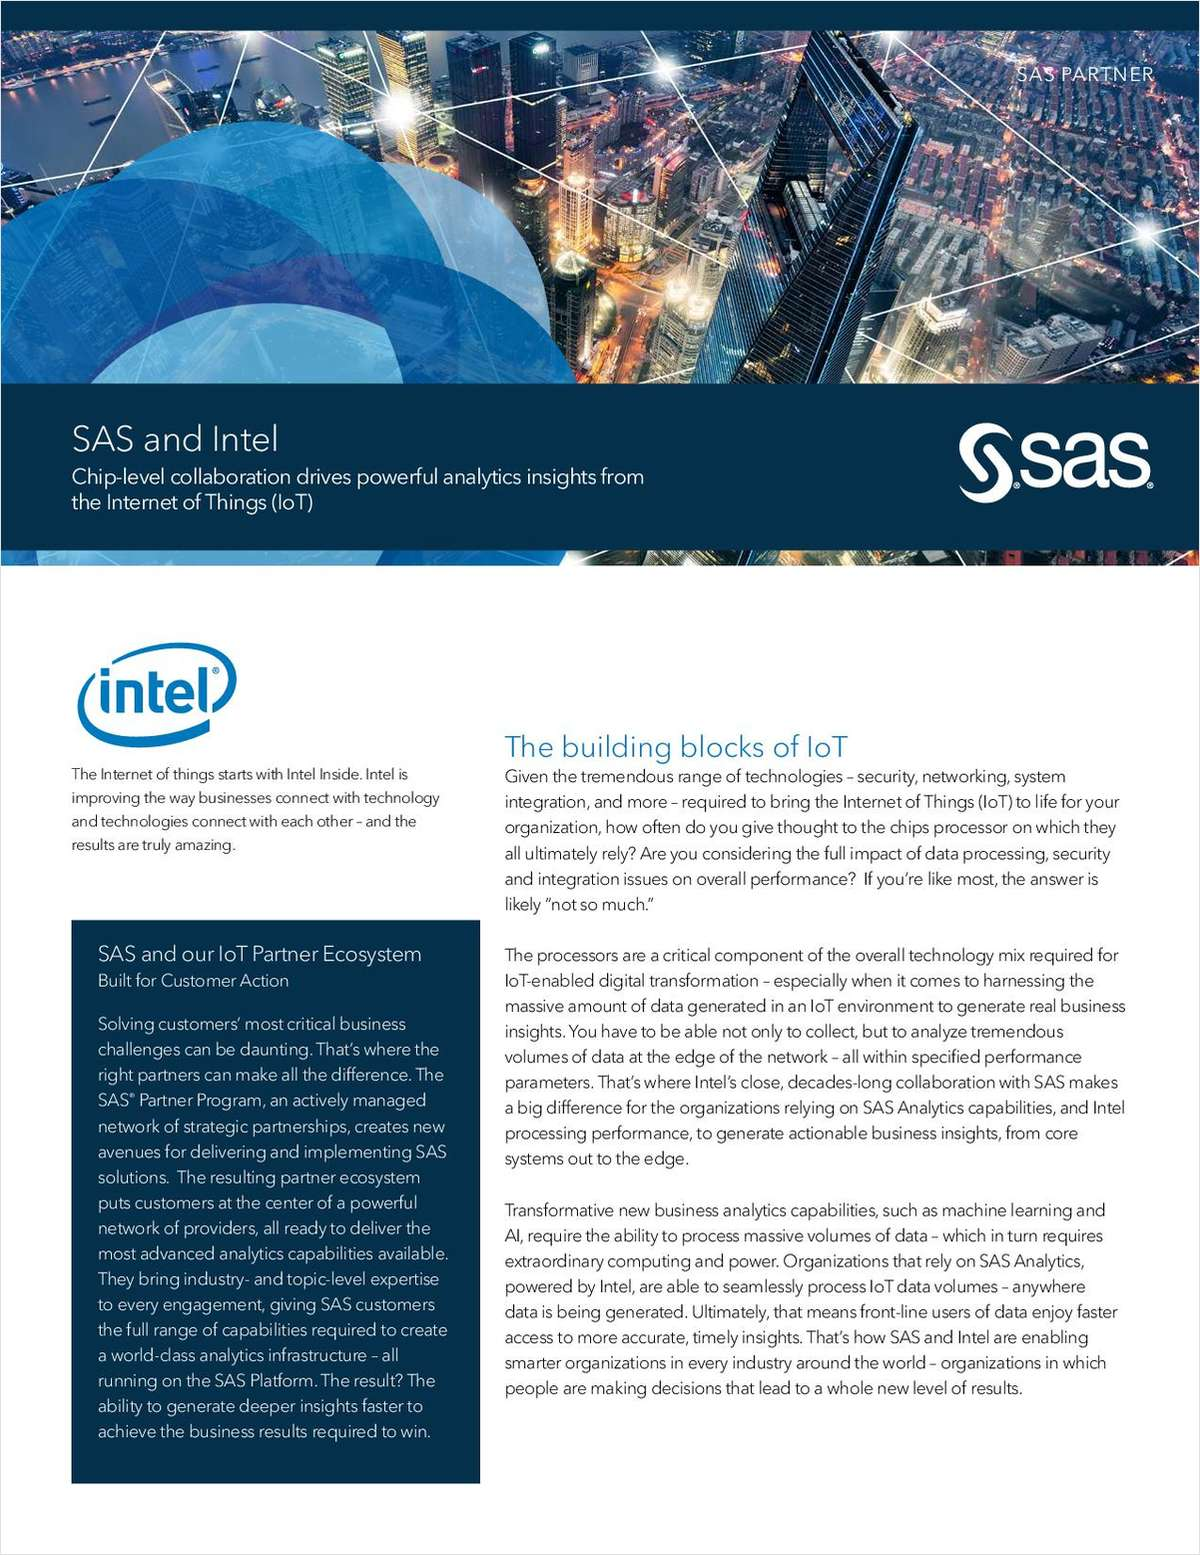 Chip-level collaboration drives powerful analytics insights from the Internet of Things (IoT)